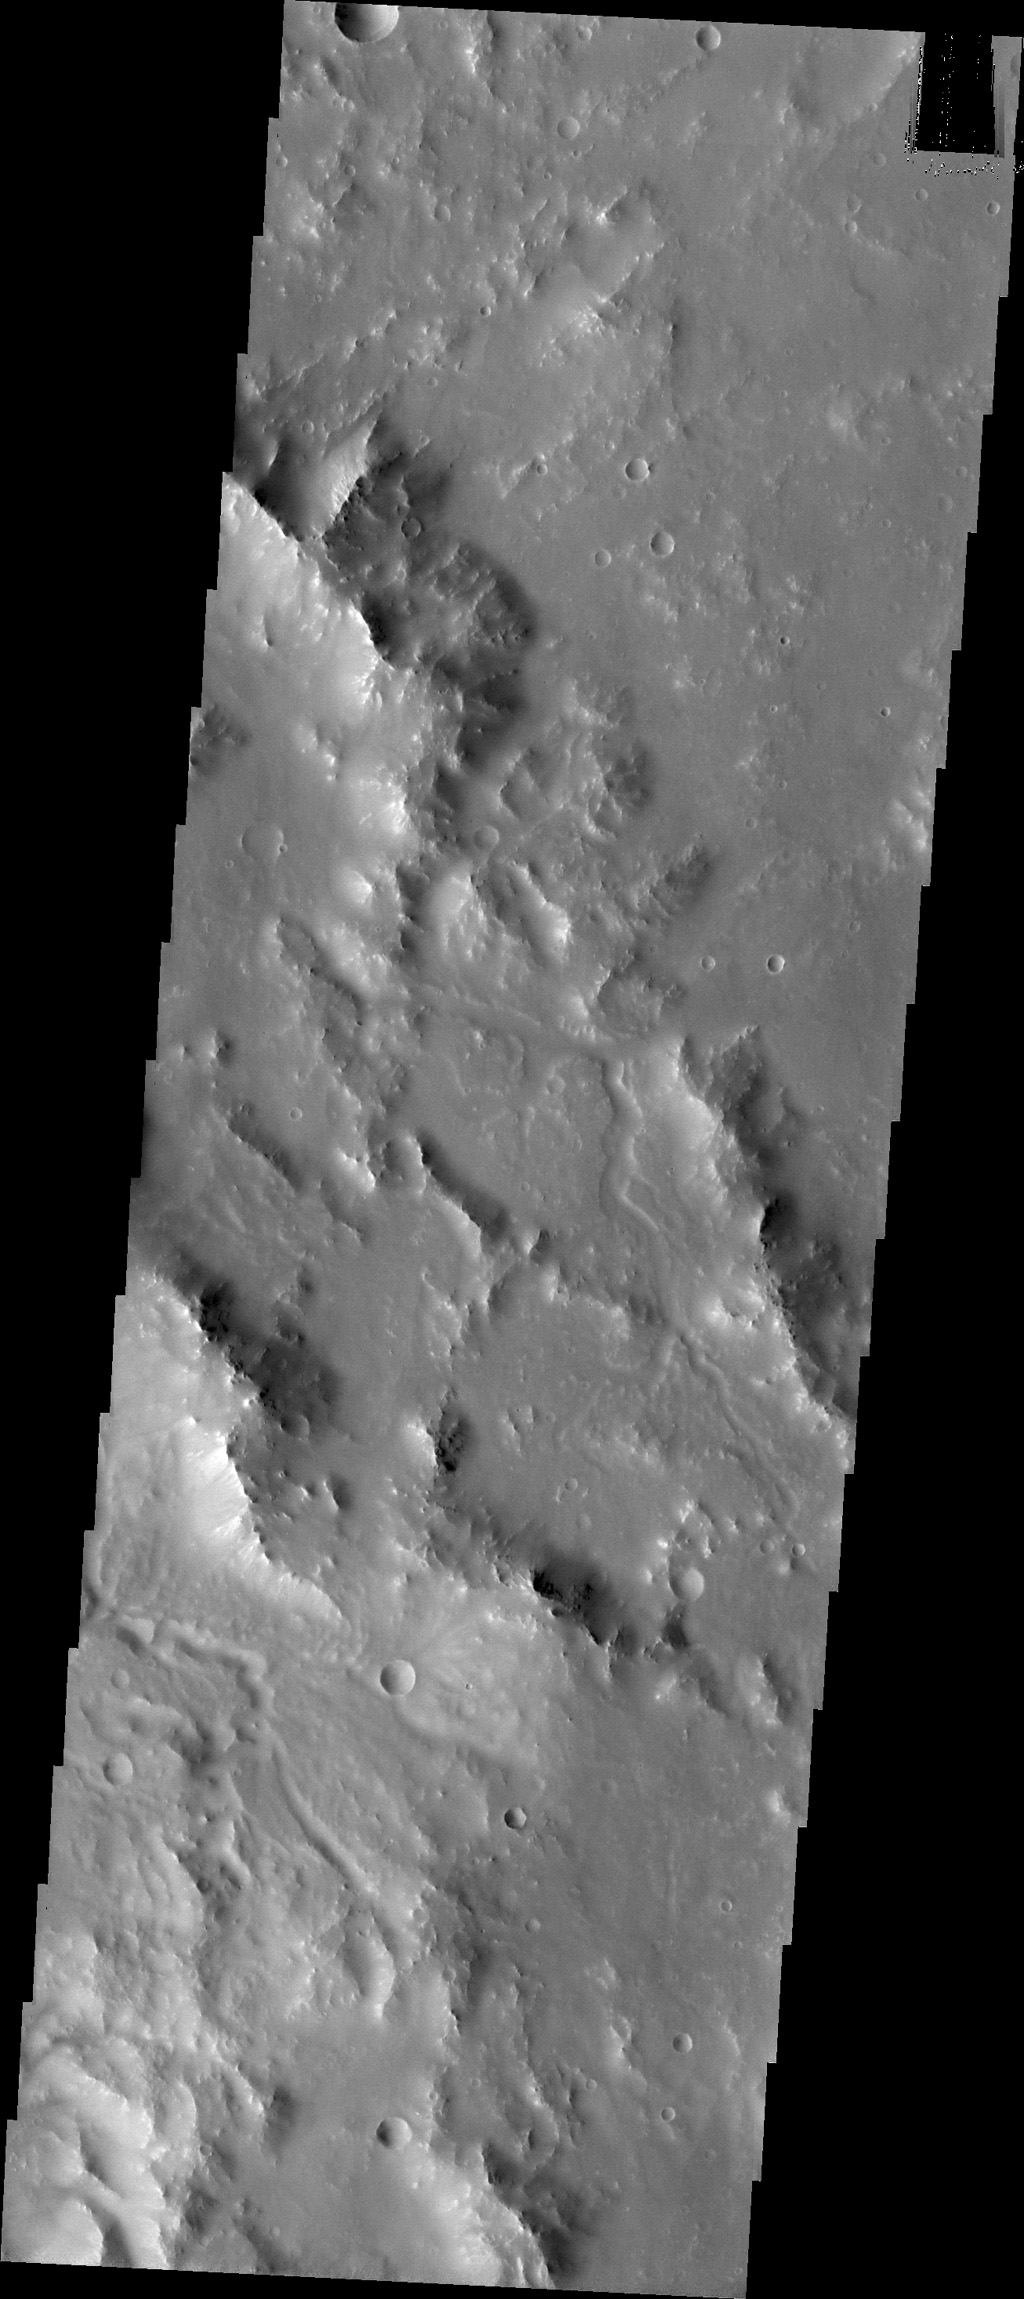 Small channels dissect the rim of Bakhuysen Crater in Noachis Terra as seen by NASA's 2001 Mars Odyssey.